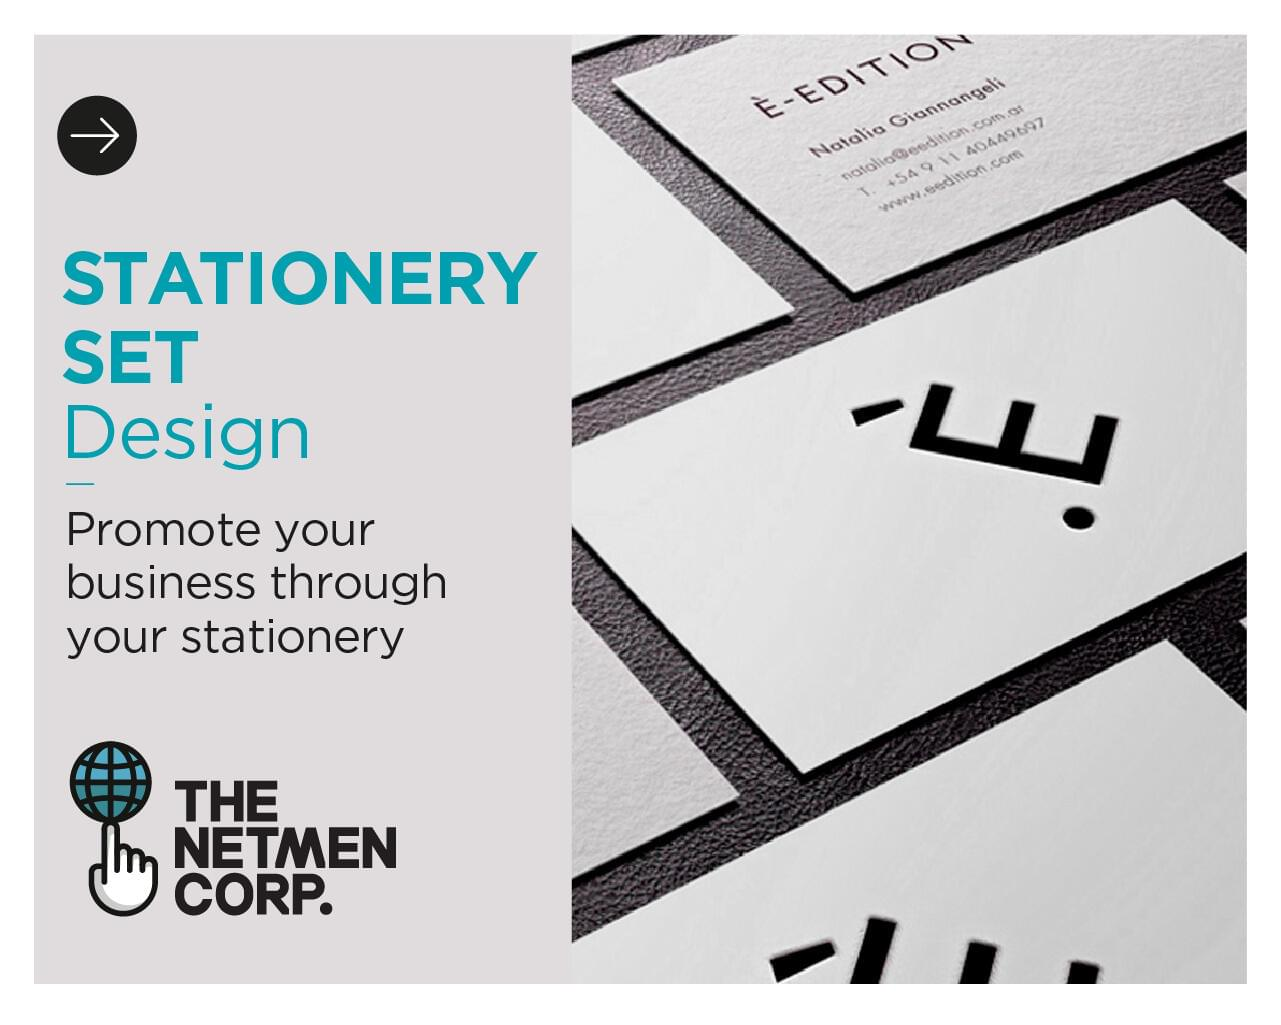 Custom and Original Stationery Set Design by thenetmen - 118350